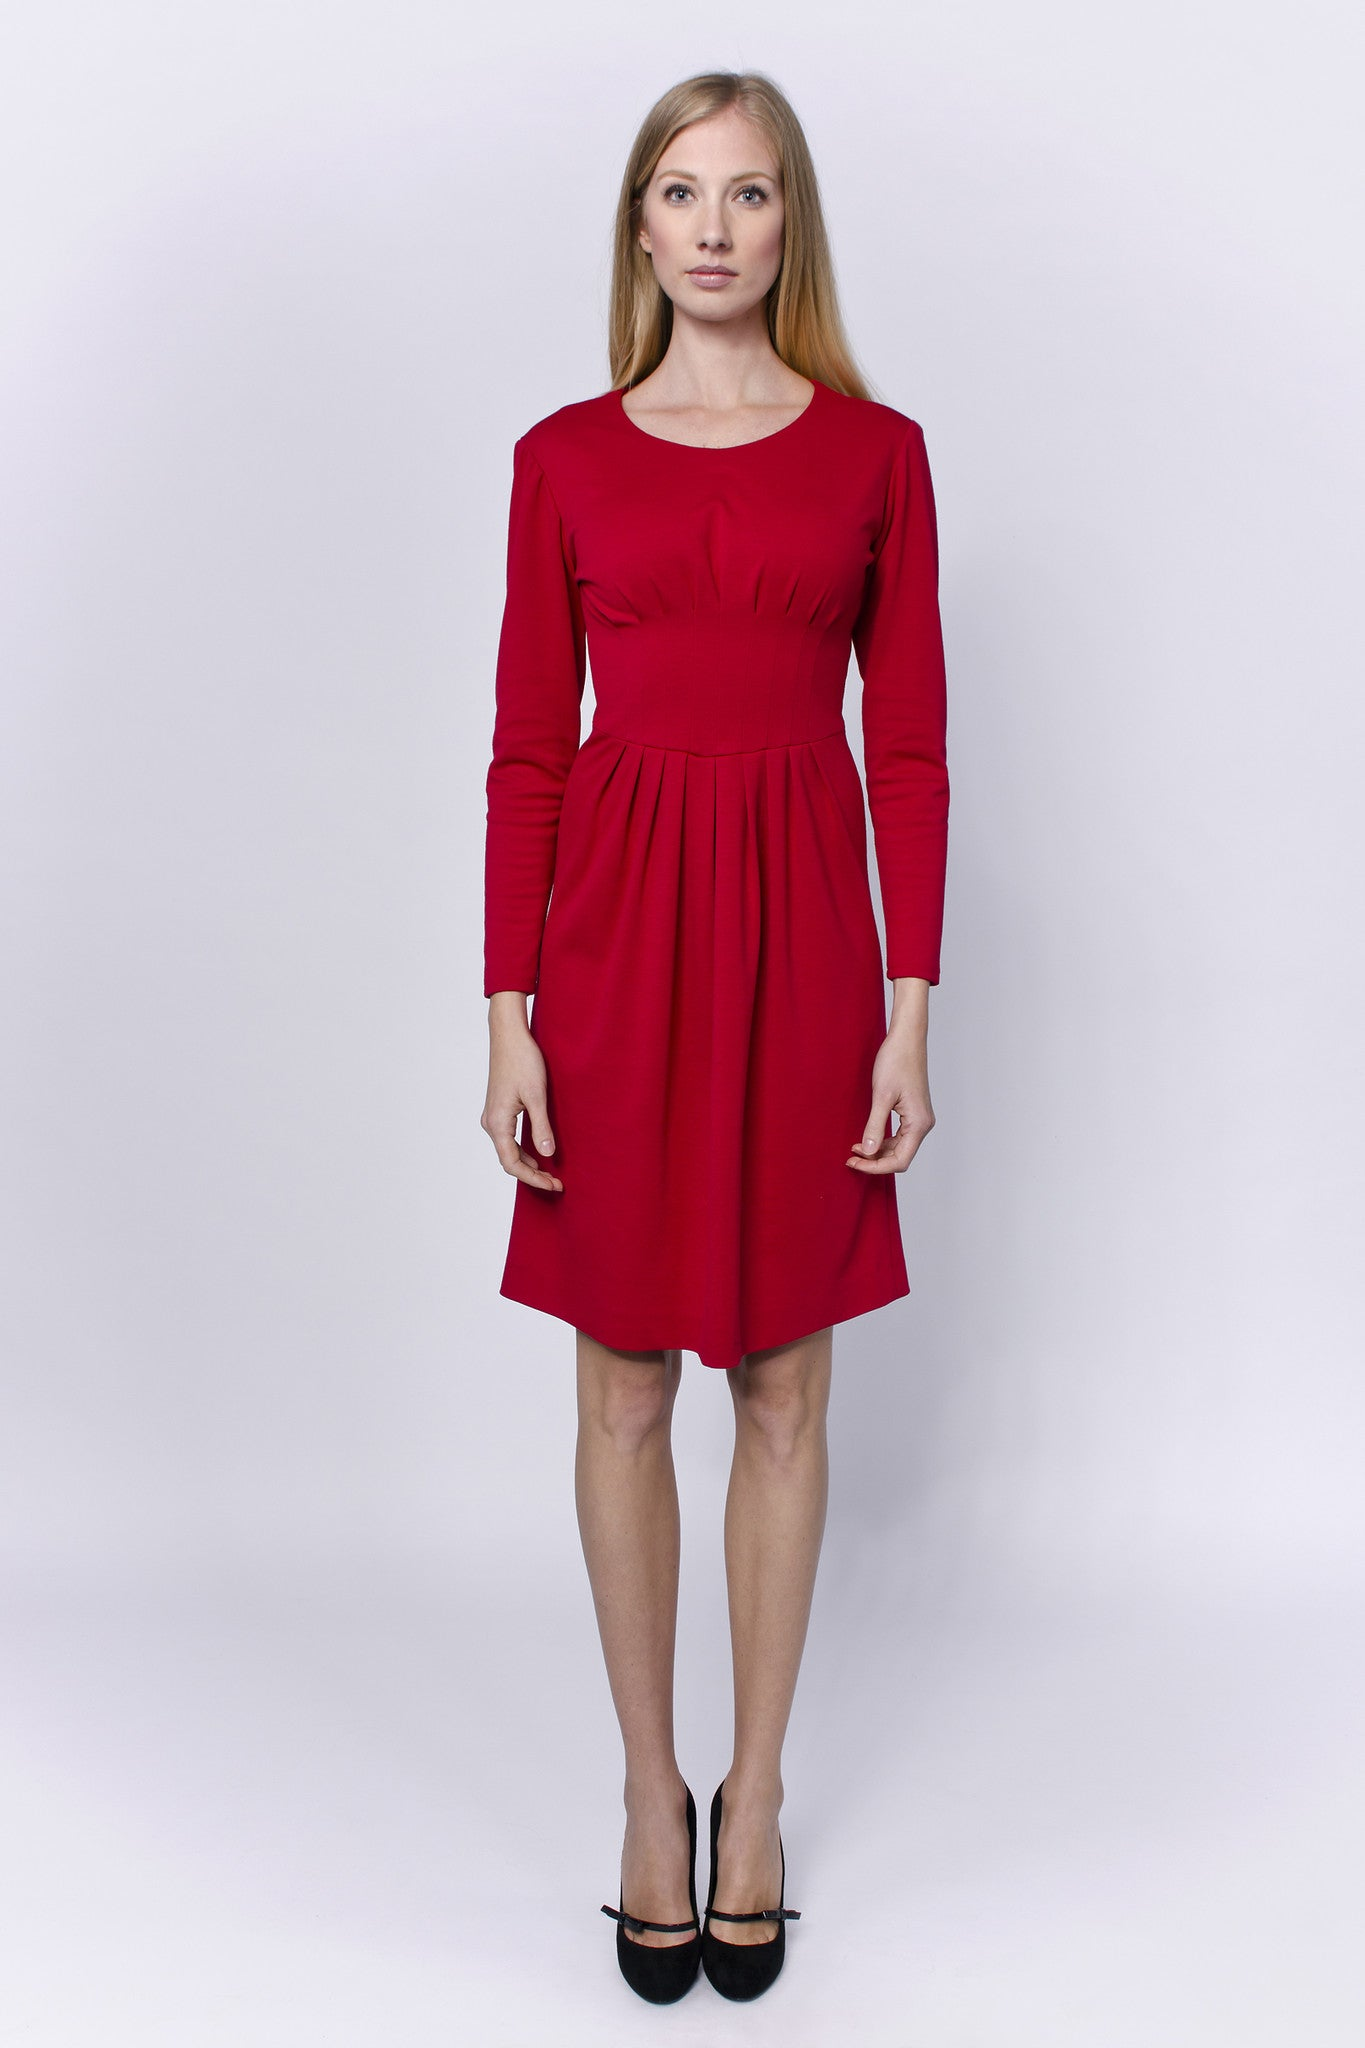 Red, long sleeved dress with sewn embellishments